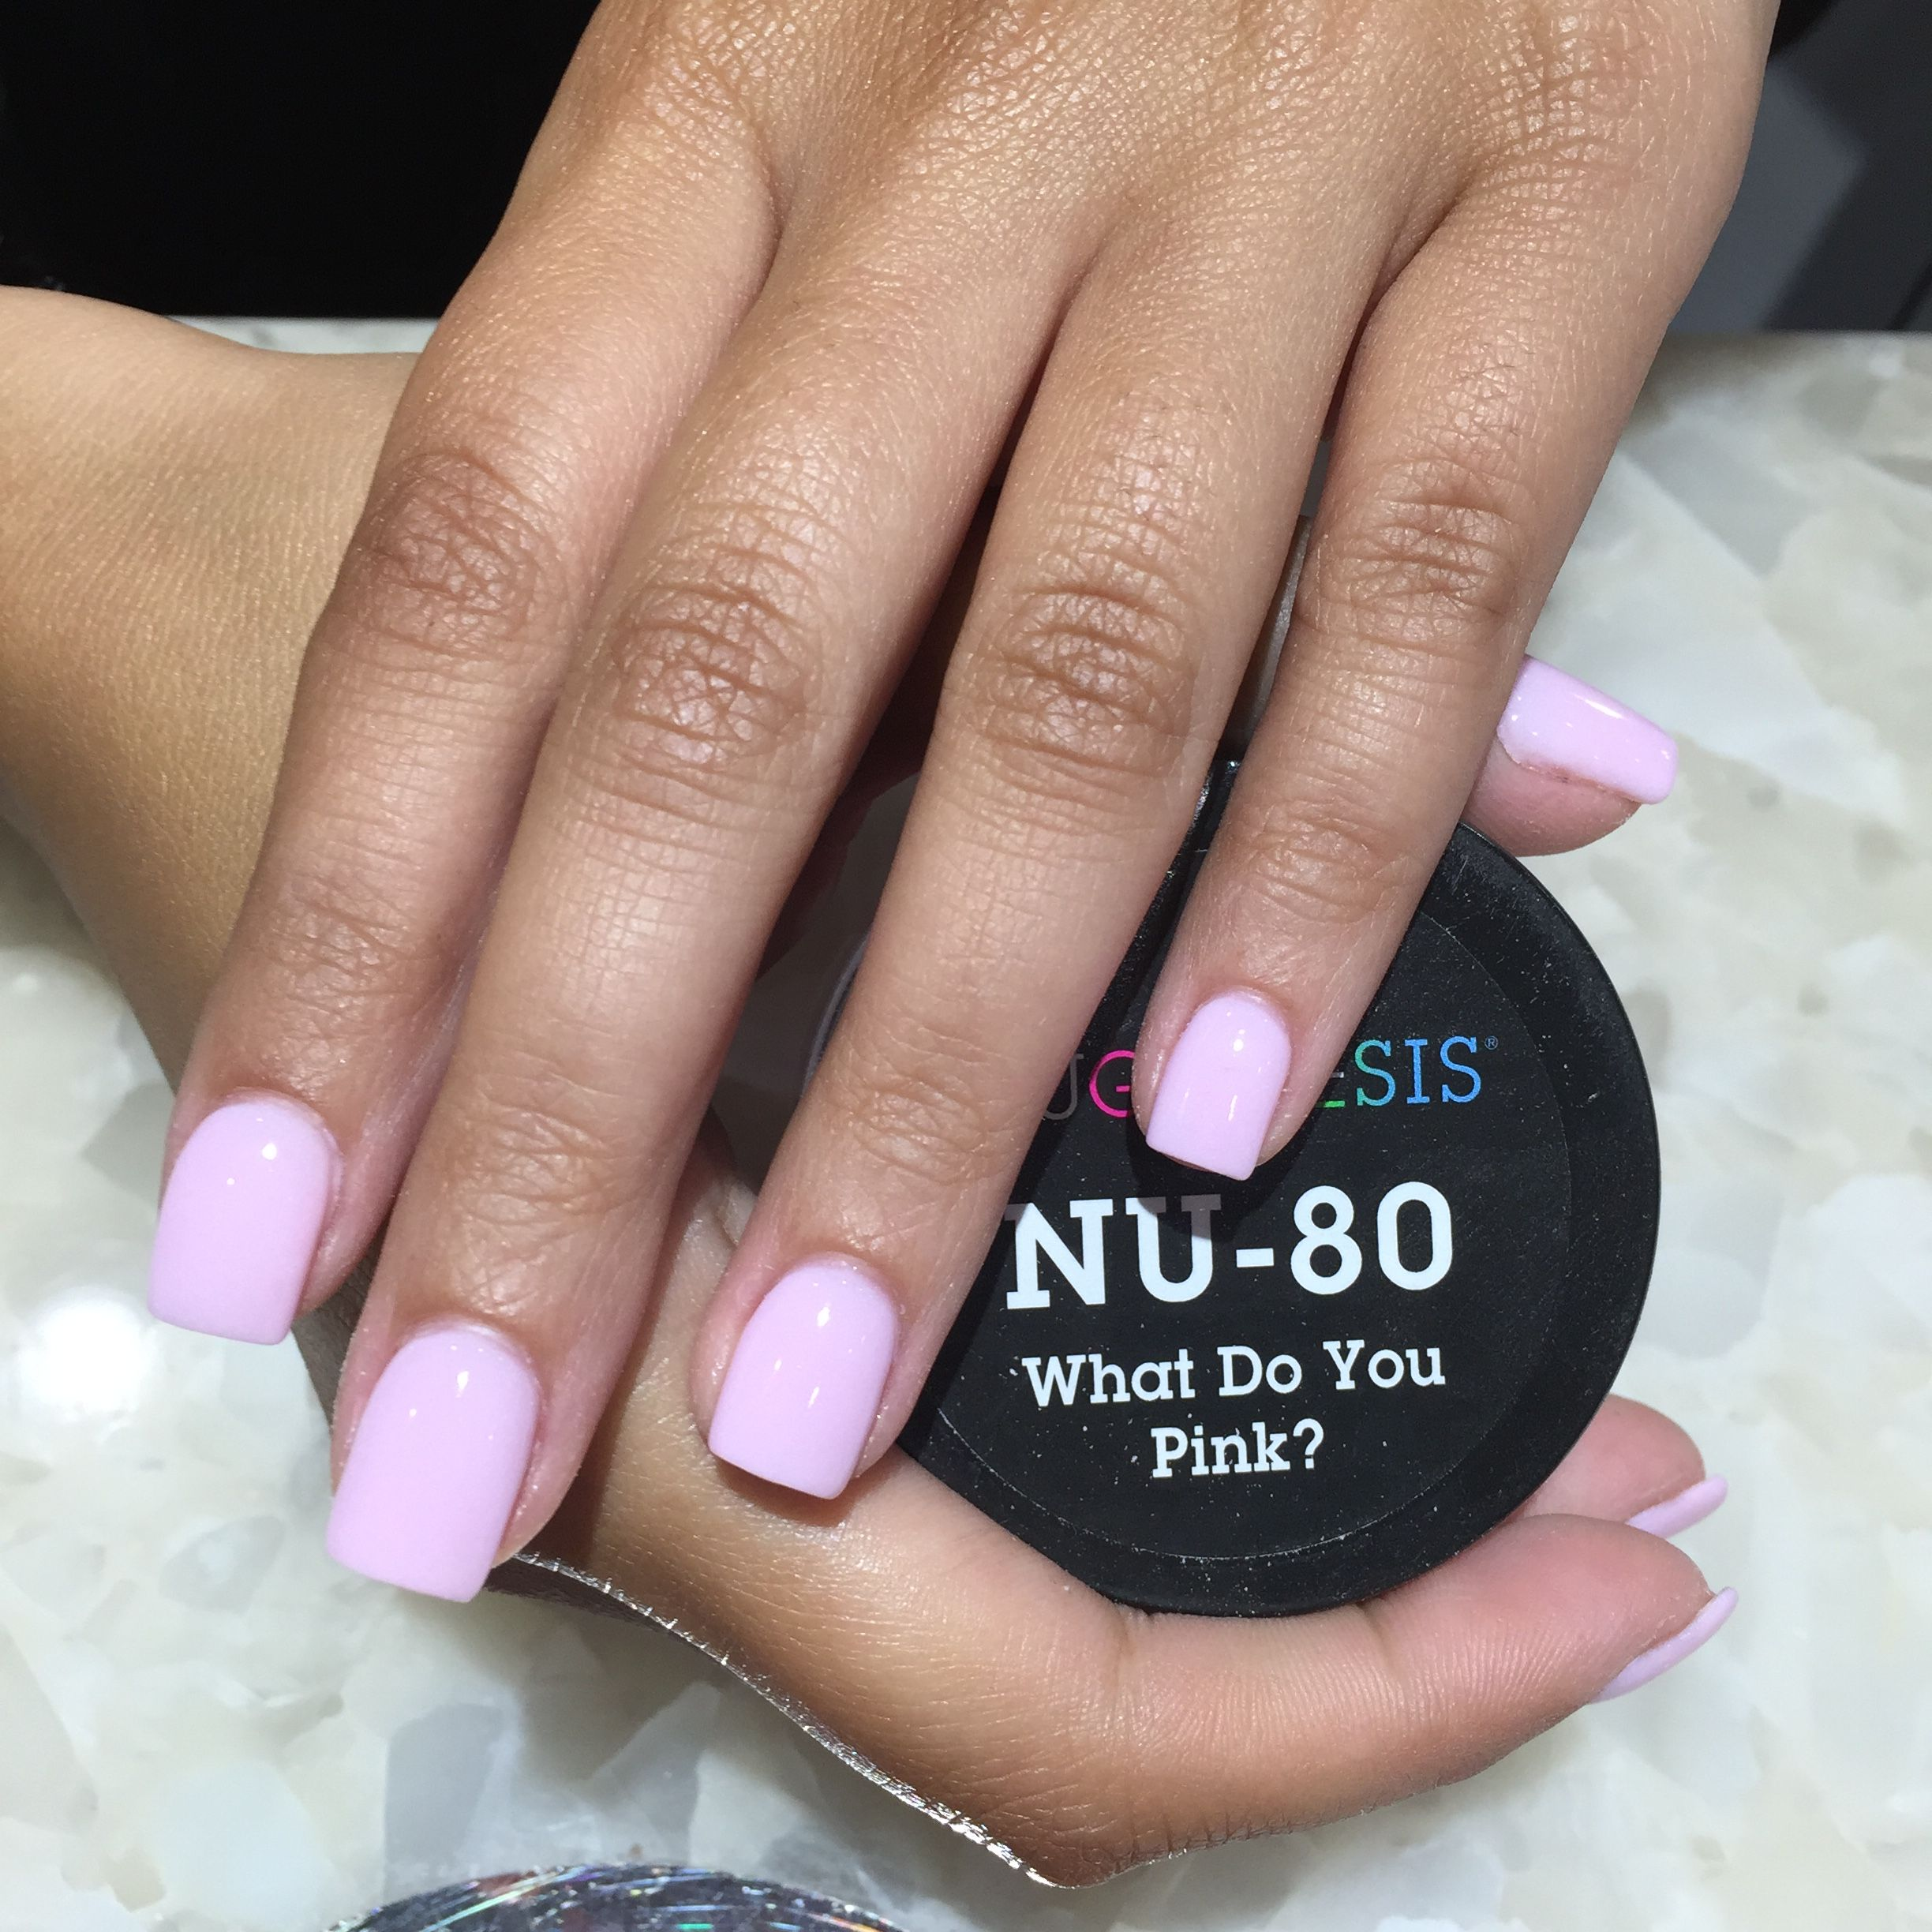 Https Indulgencenailsandspa Com Special Deals We Have Some Space Available Today Call Us 781 558 1452 For Your A Dipped Nails Dip Powder Nails Beauty Nails